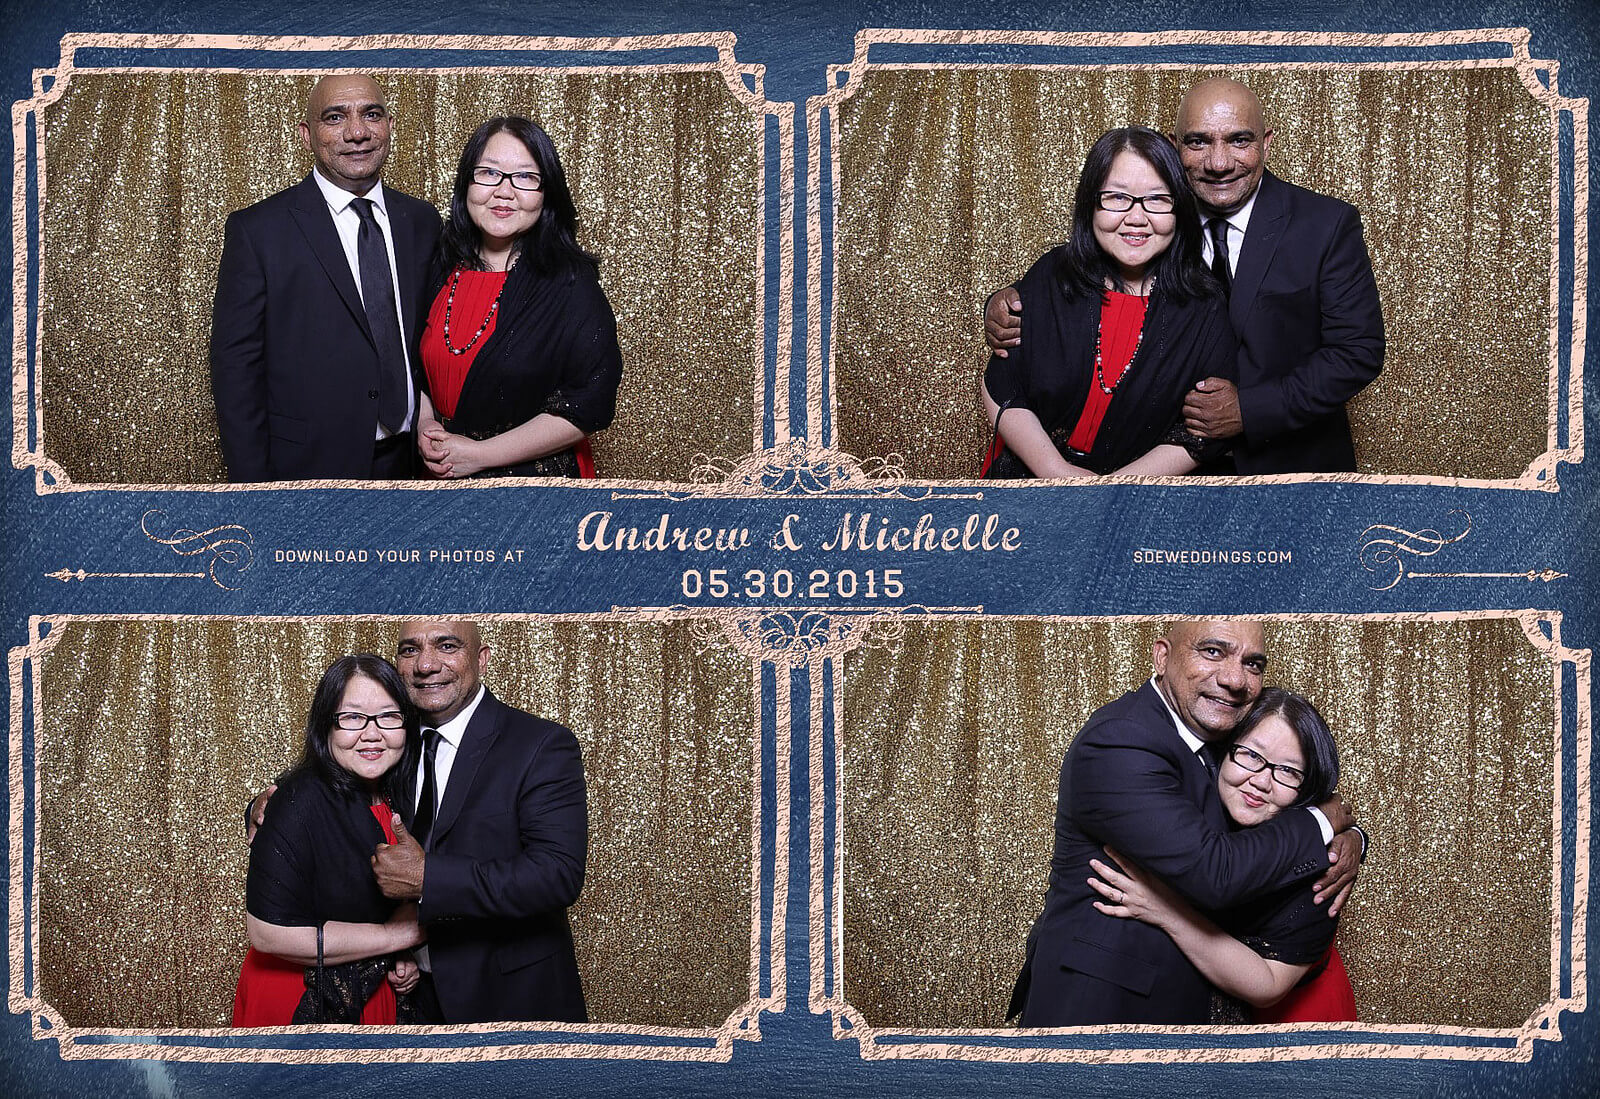 Toronto Police Wedding Photobooth at Peel Regional Police Association Banquet Hall 2